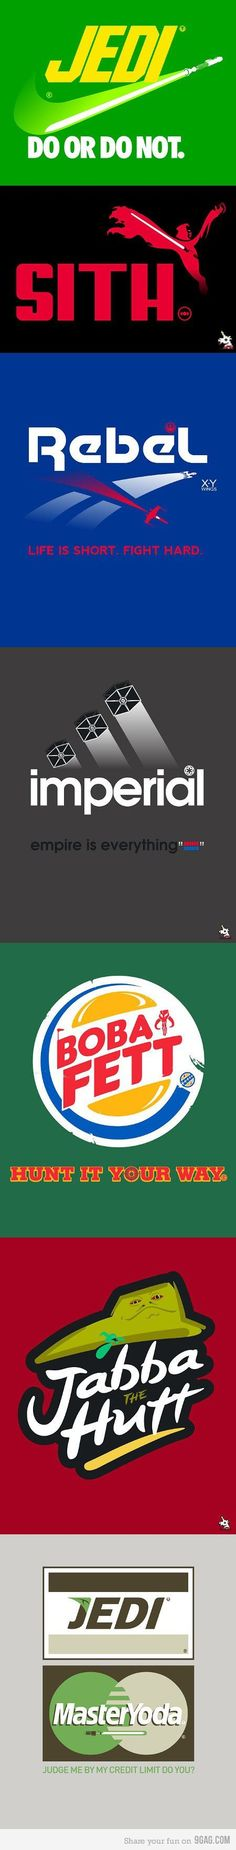 Advertising in the Star Wars Galaxy